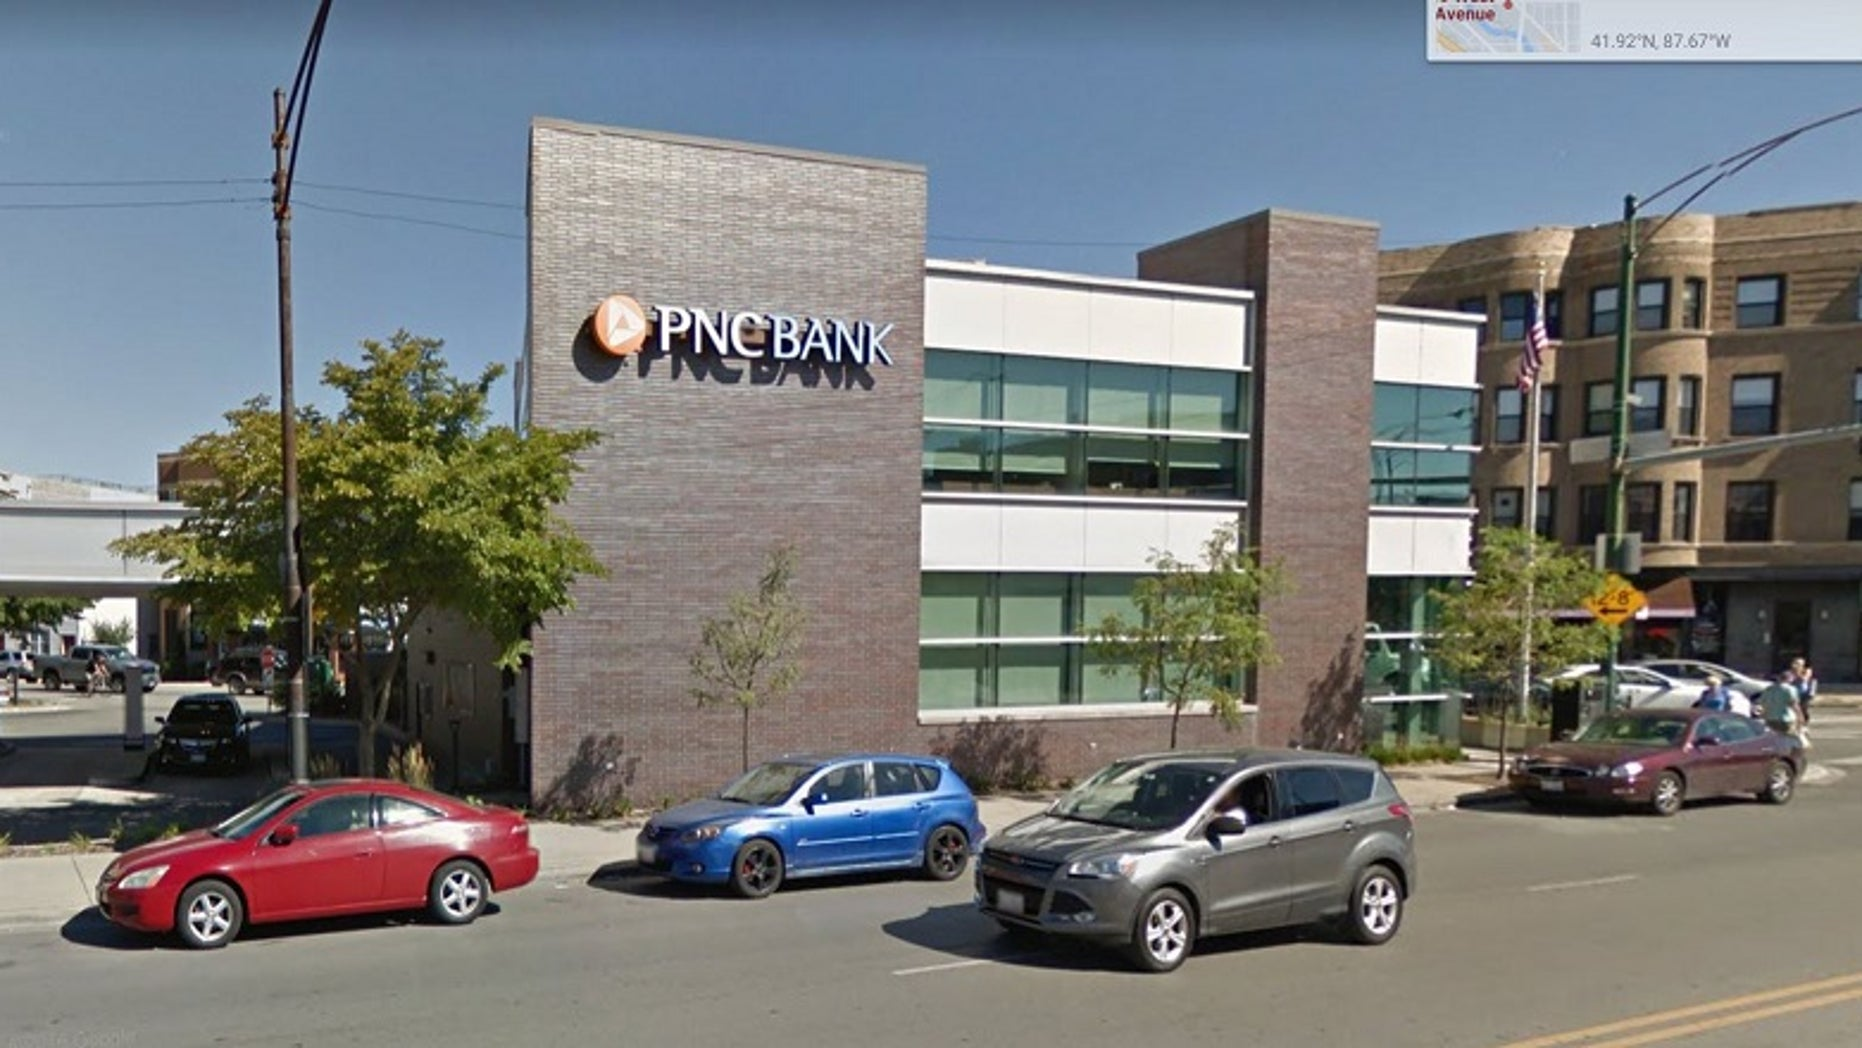 A Chicago woman died a few days after she was discovered unresponsive with her stuck in fence near a PNC Bank branch.